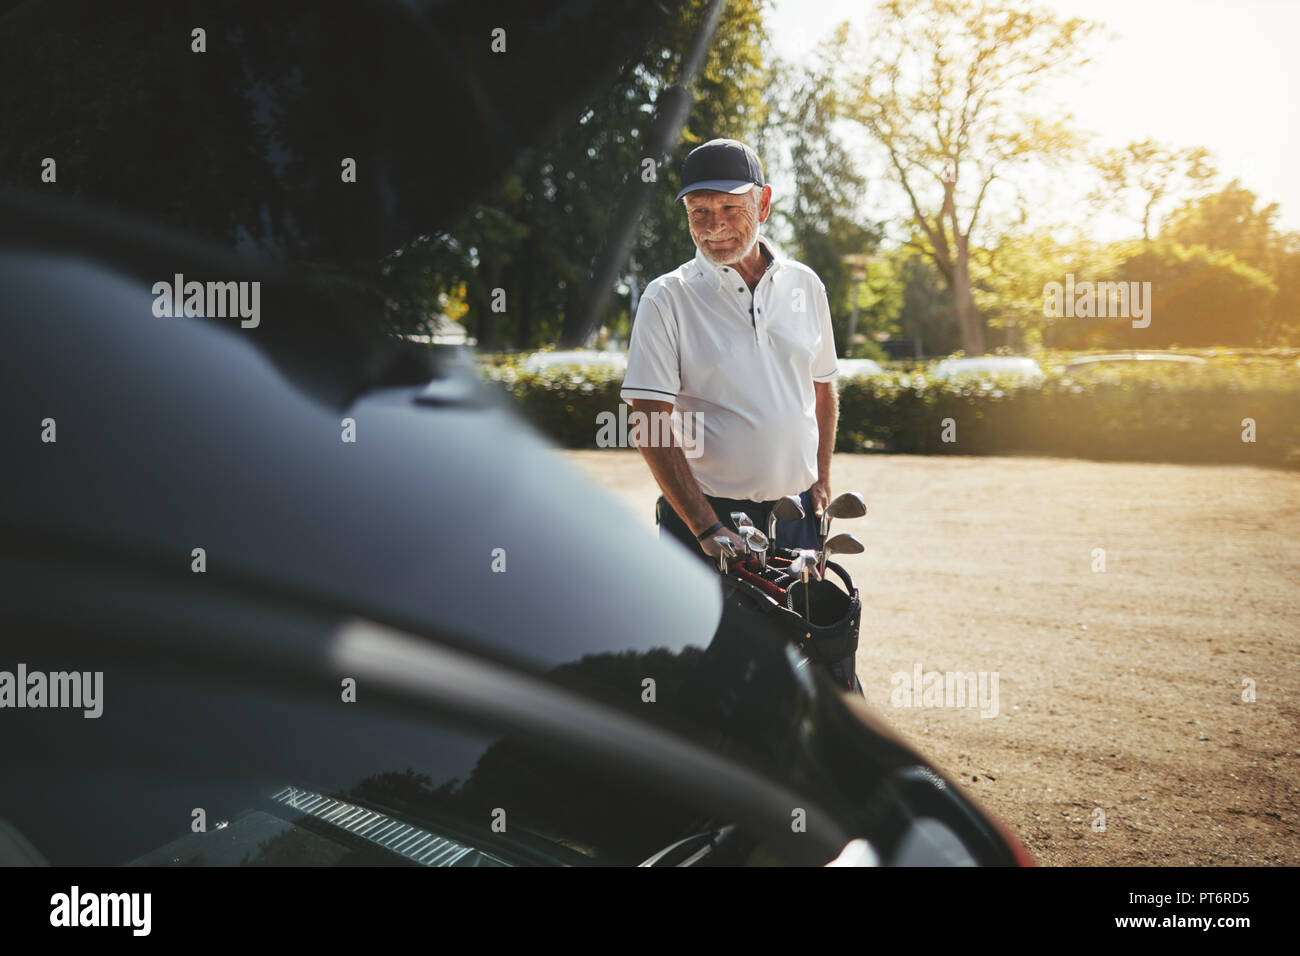 Sporty senior man smiling while packing his clubs into the trunk of his car after playing a round of golf on a sunny afternoon - Stock Image